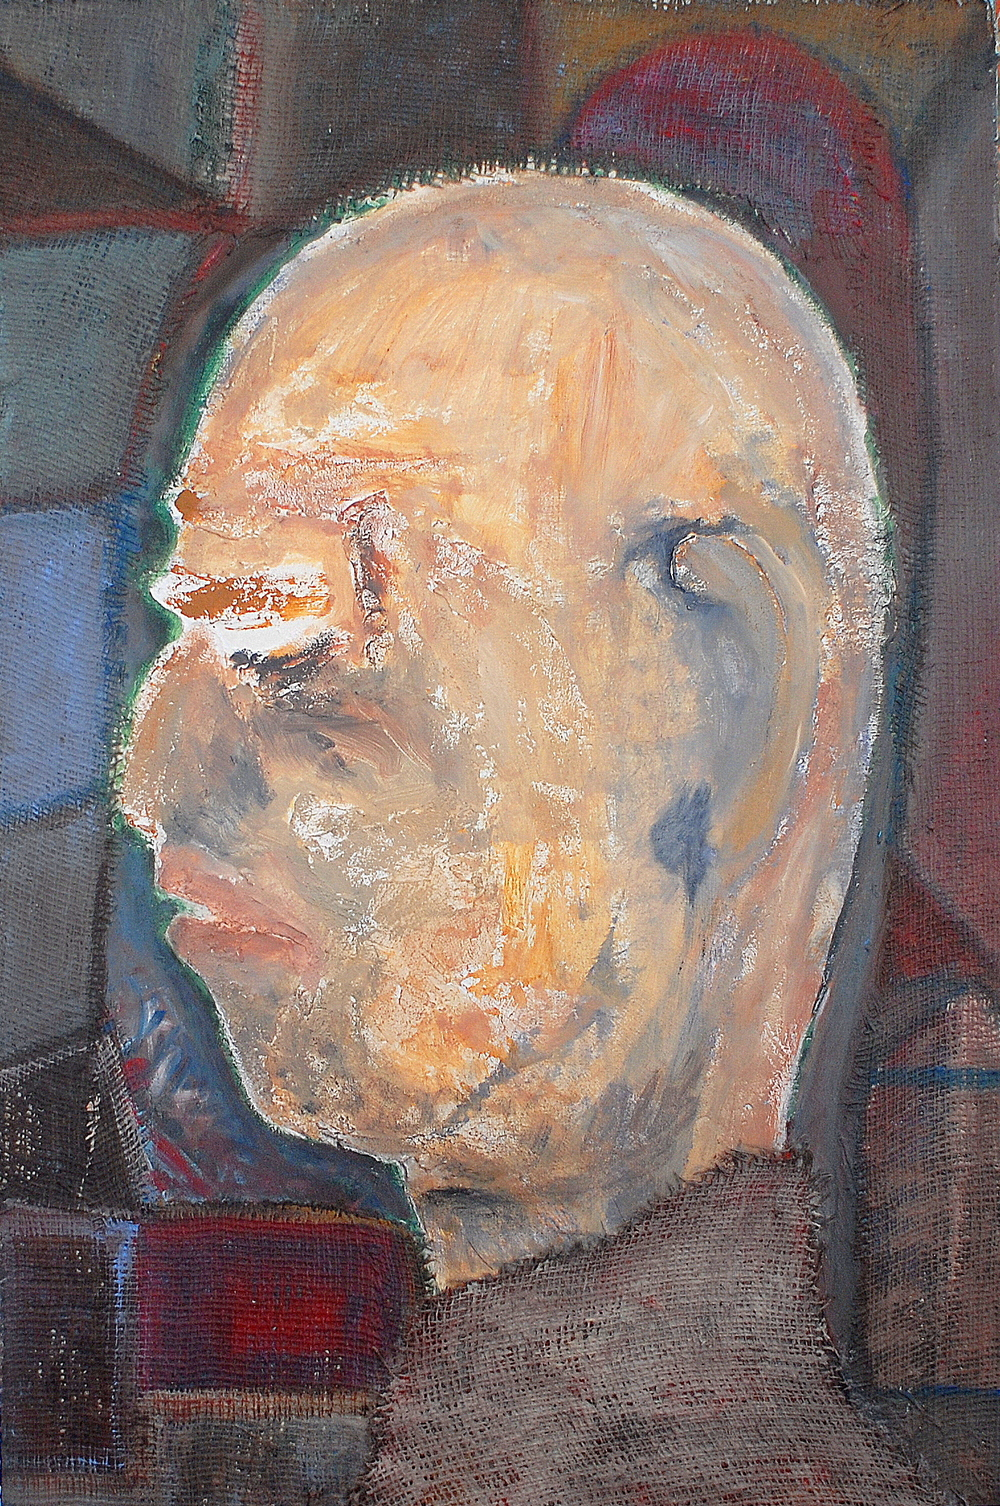 penitent-man-painting-bruce-ley